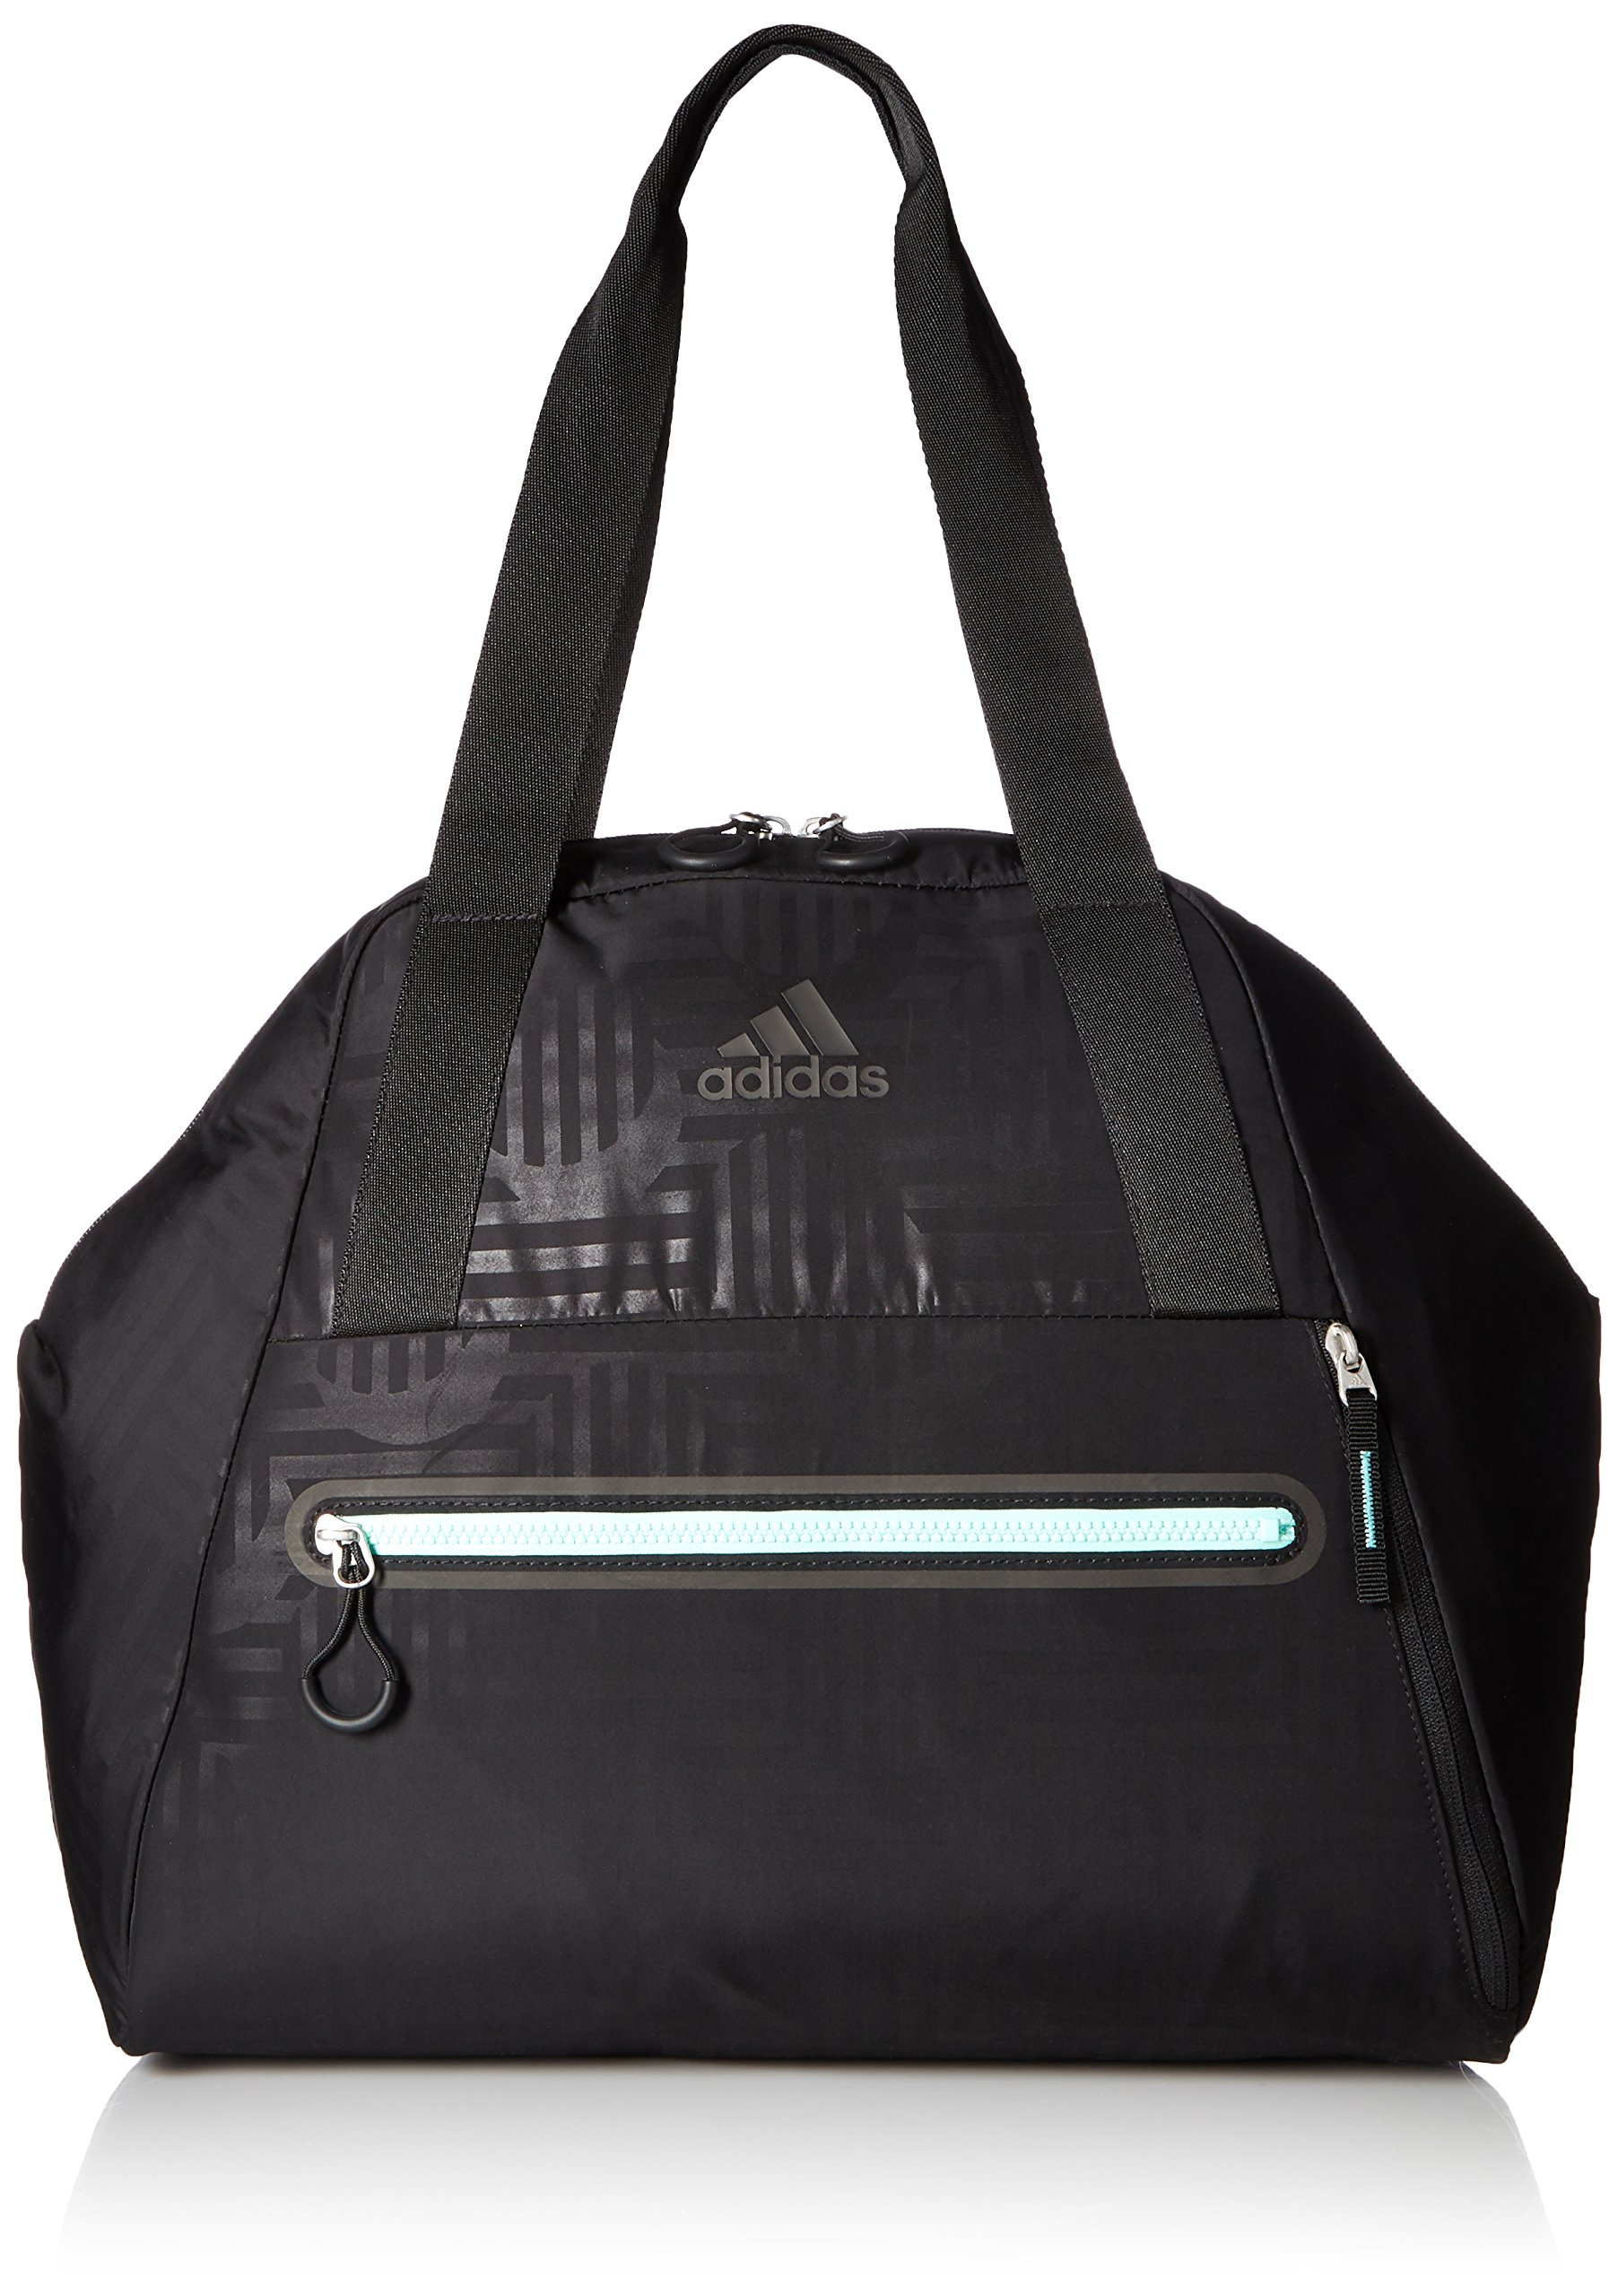 adidas Studio Hybrid Tote Bag, Black/Easy